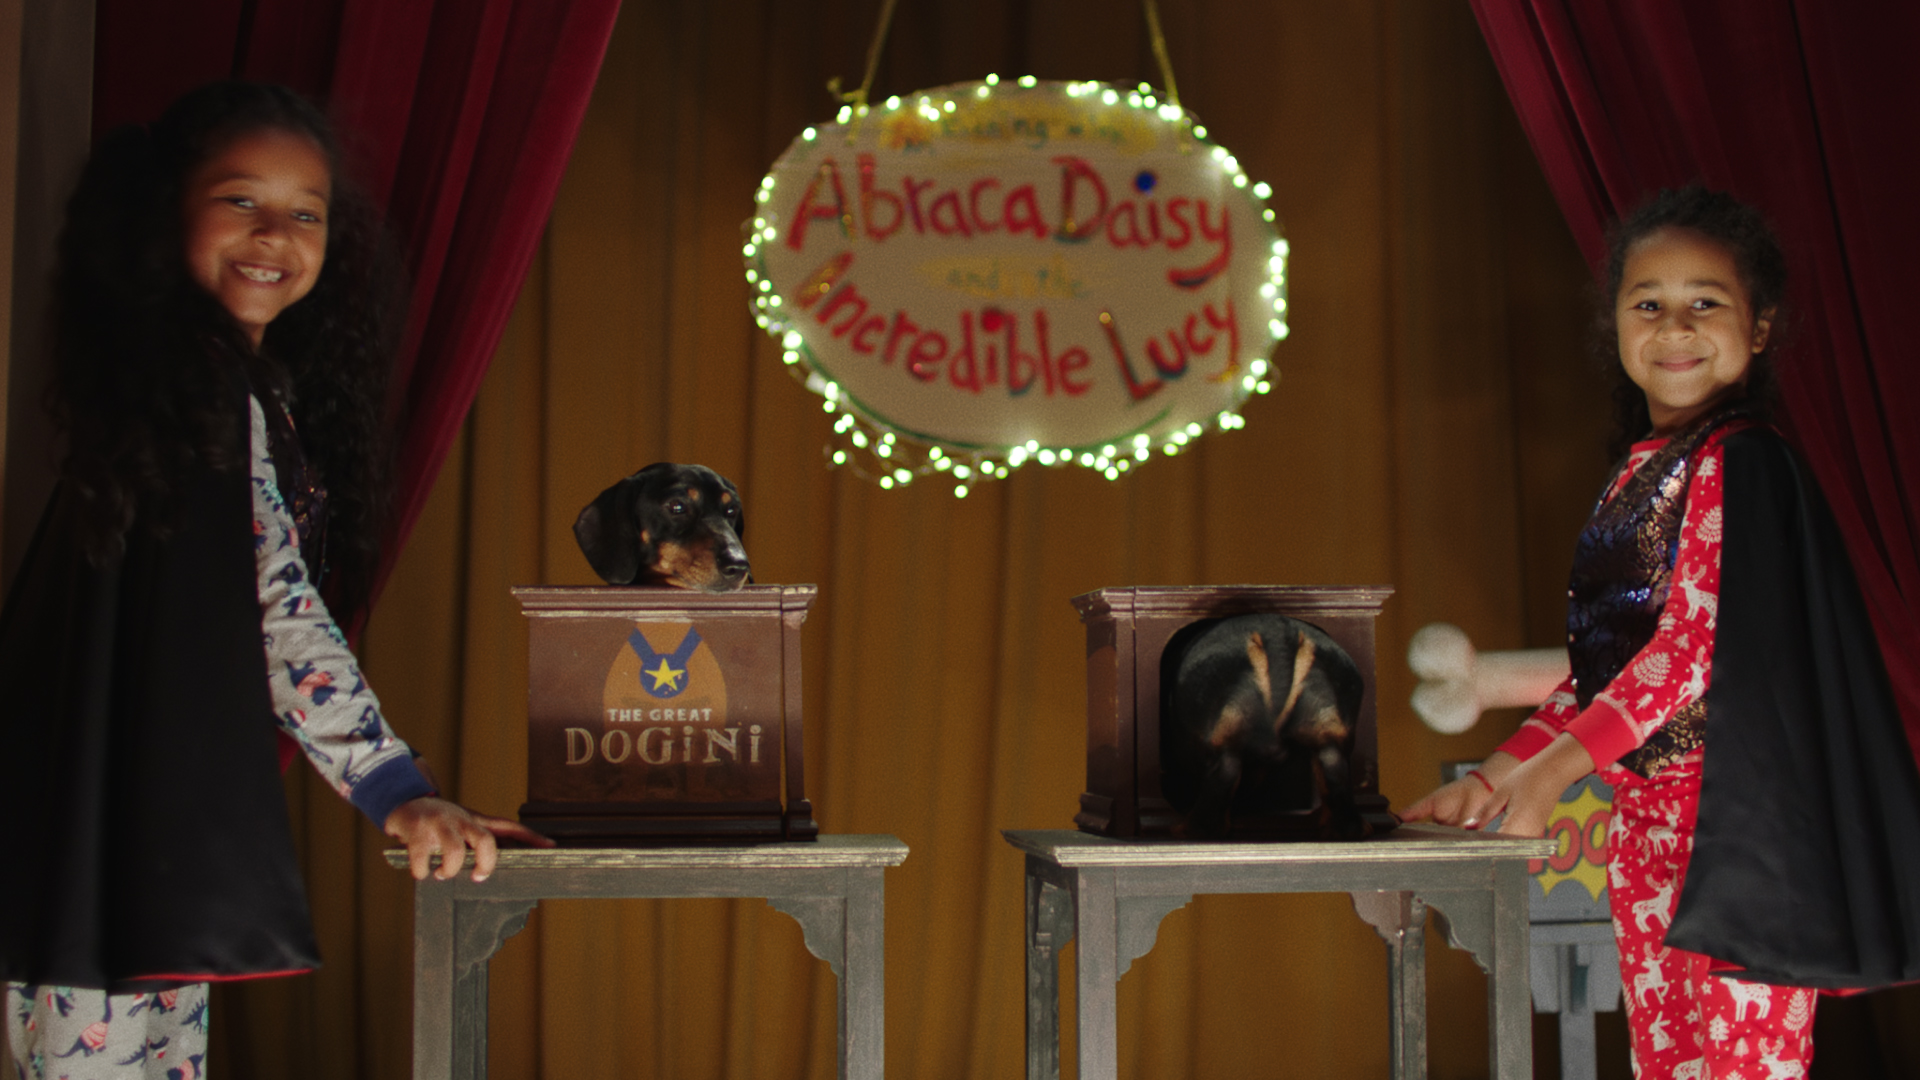 Argos' Christmas ad for 2020 features two sisters, Lucy and Daisy, putting on a magical performance in front of their family